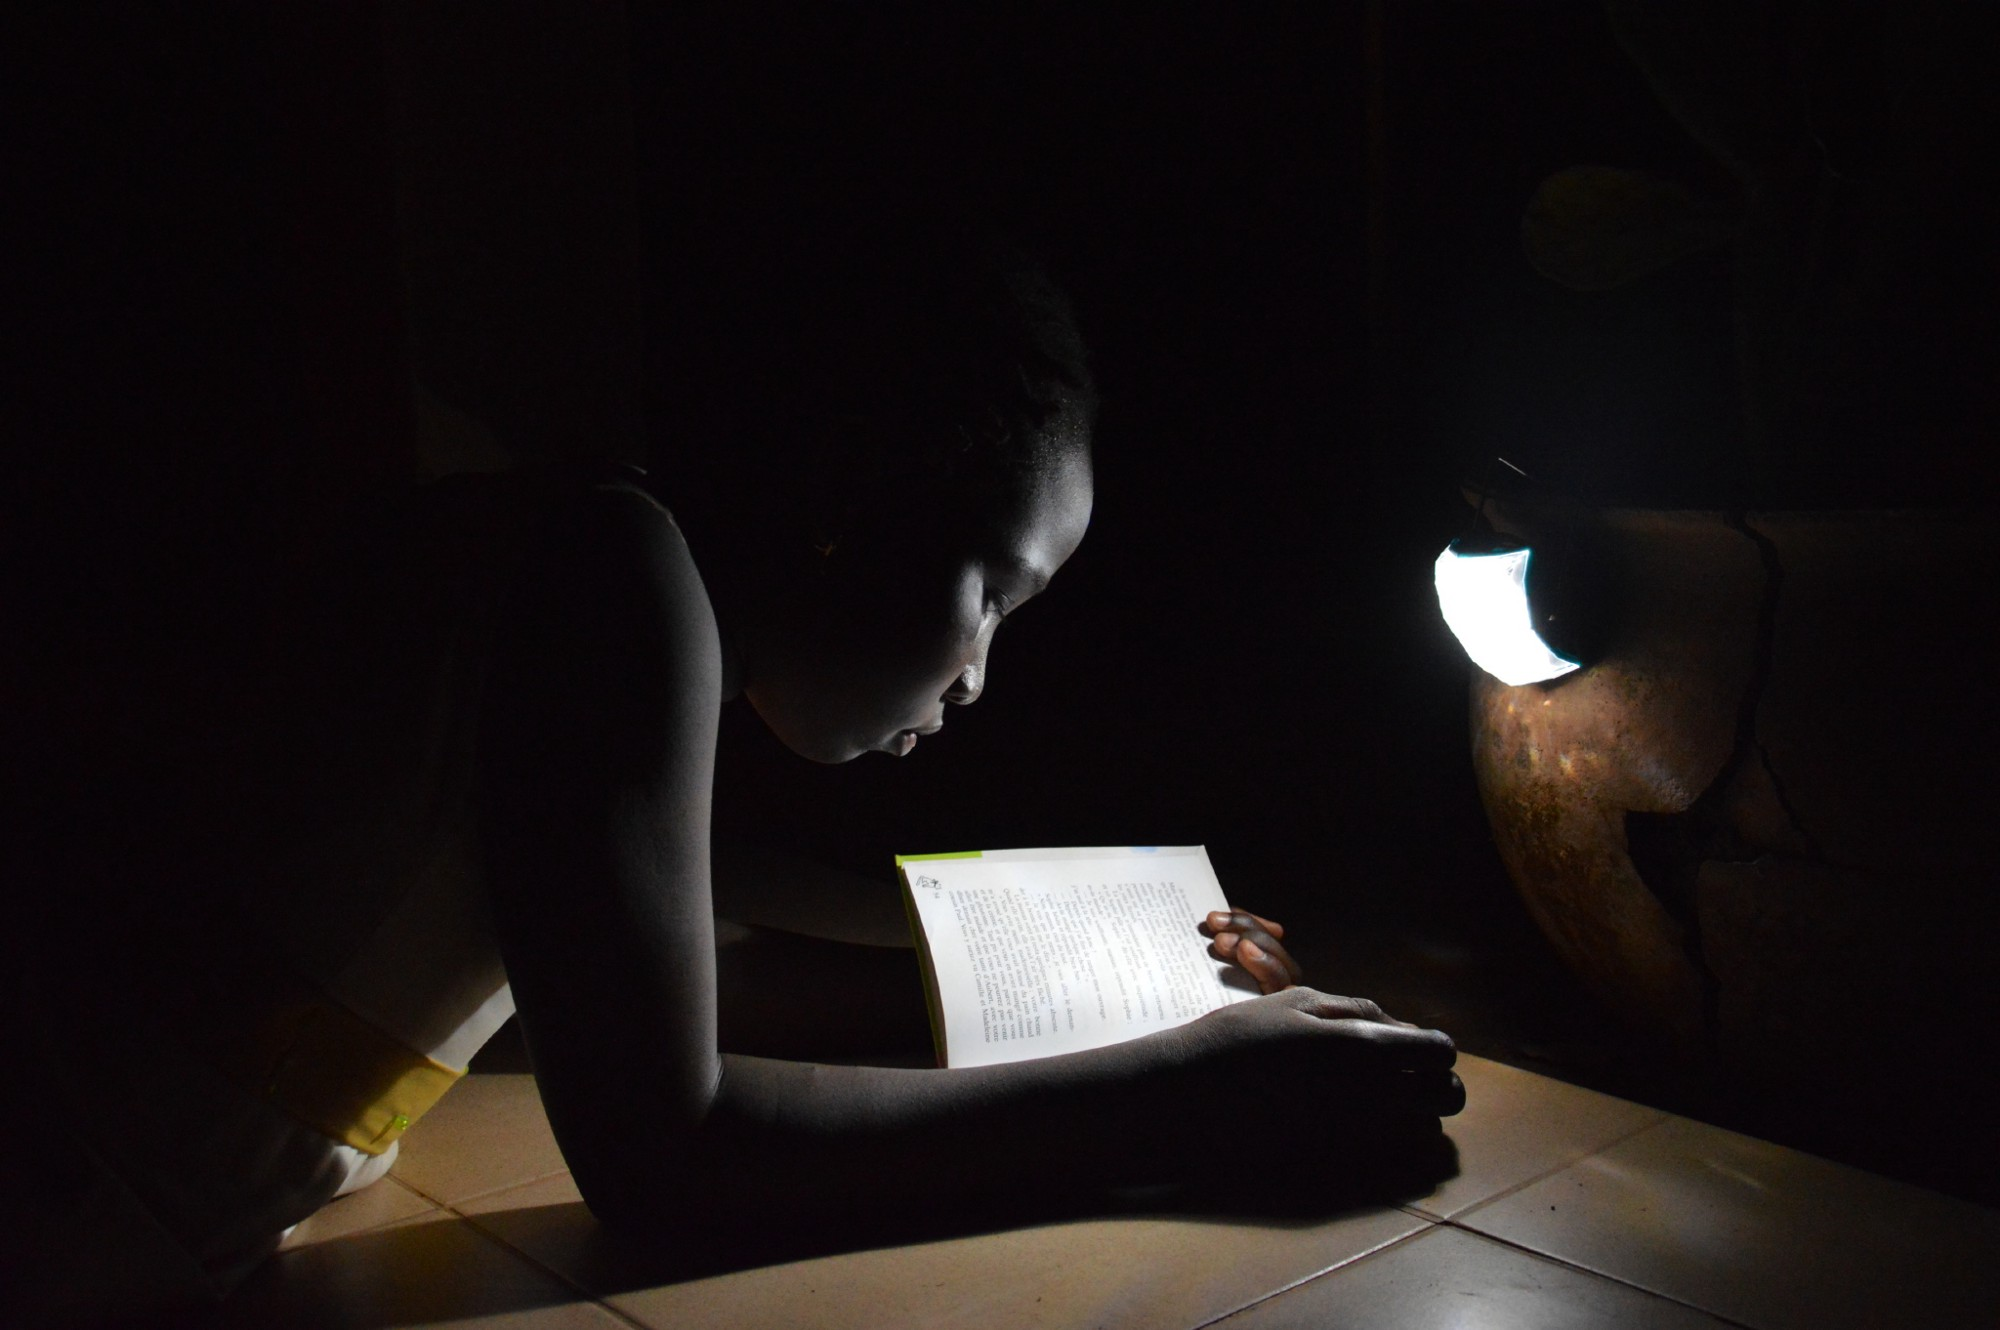 Little Sun Releases A New Solar Lamp Designed By Olafur